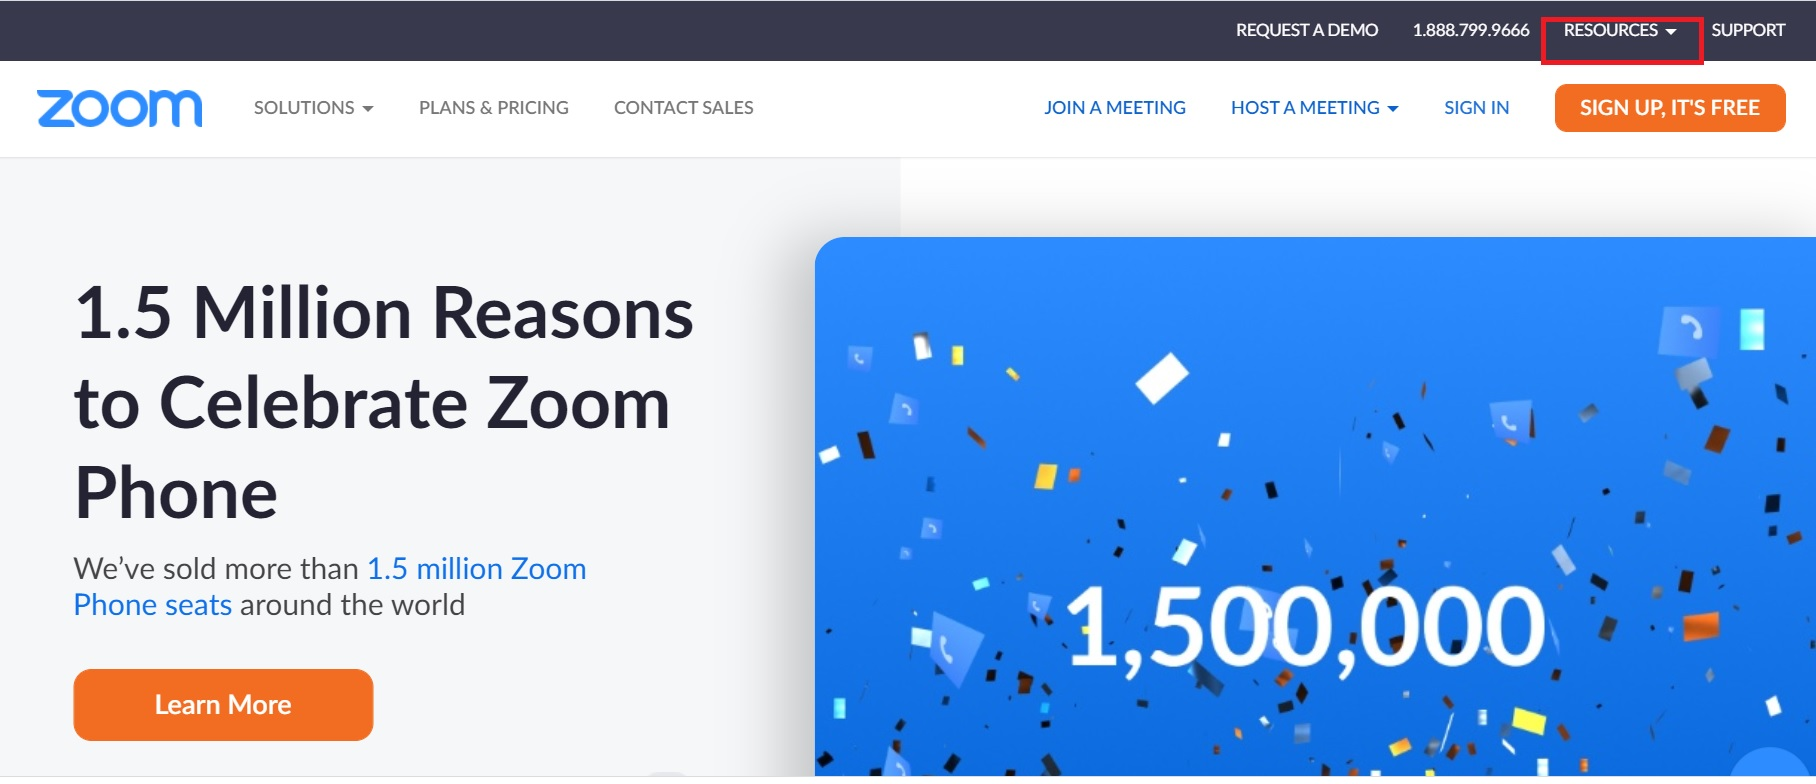 Open Resources Tab on Zoom Website